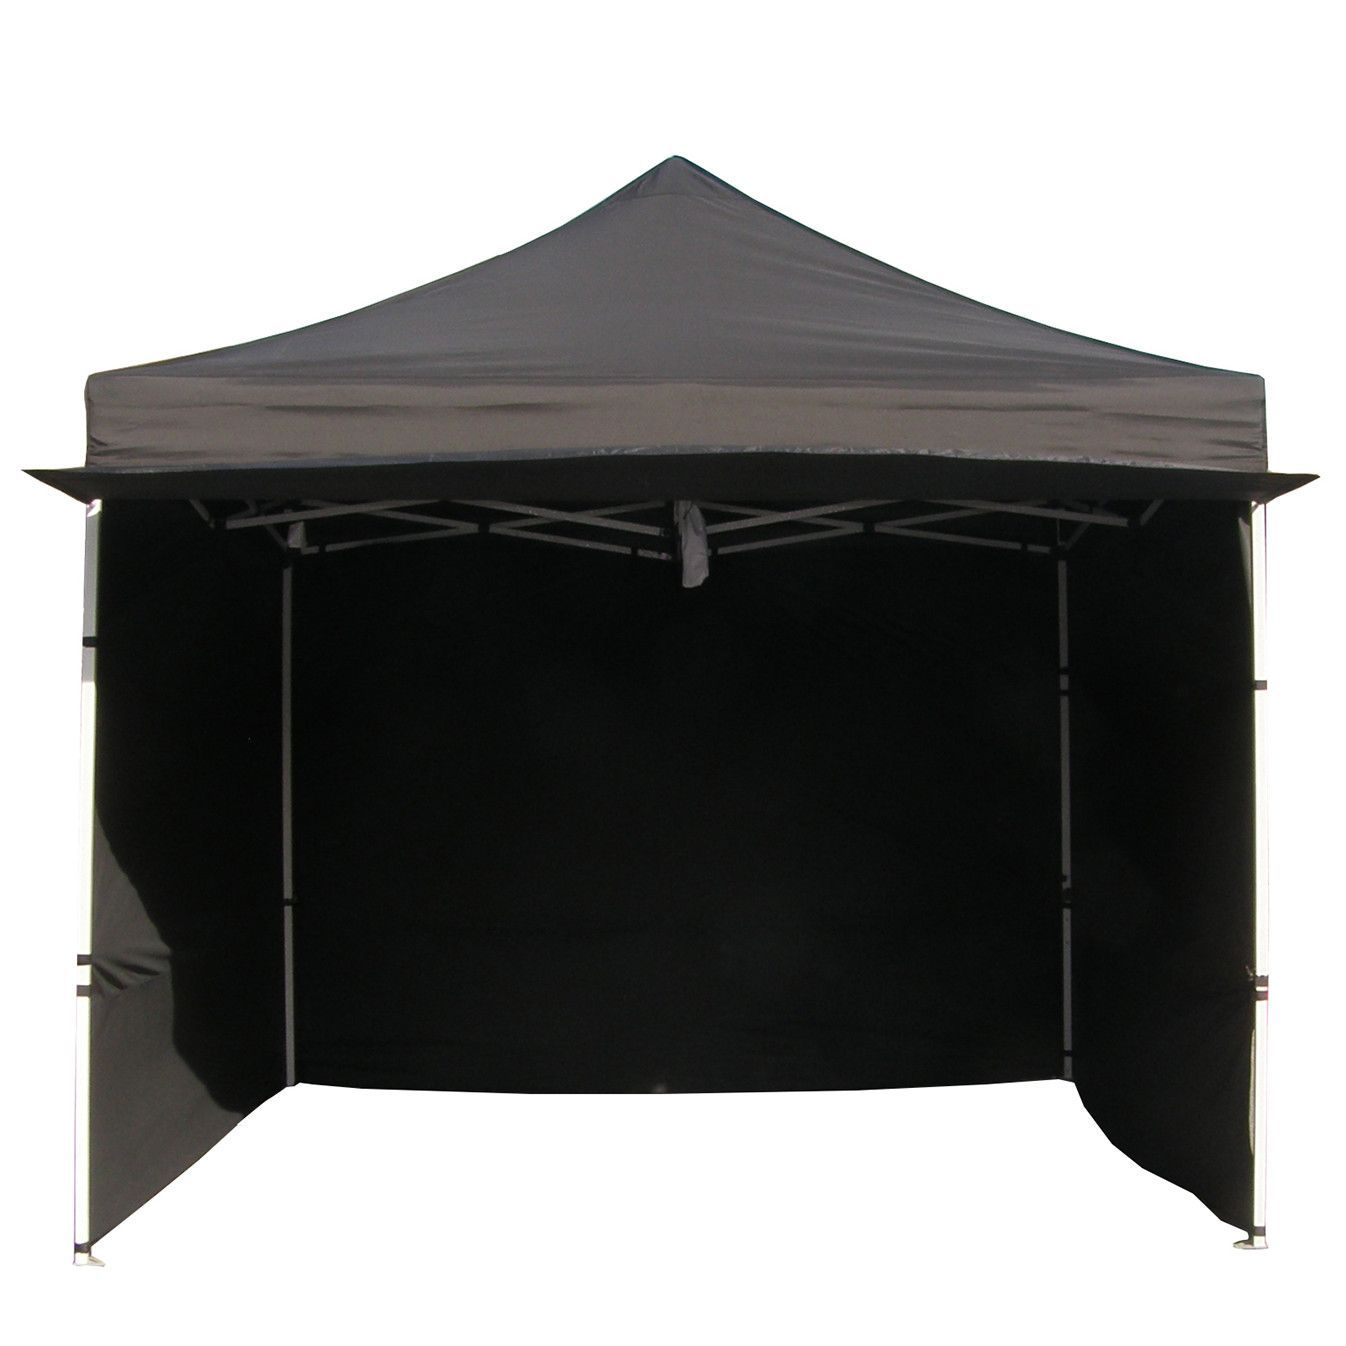 Alumix X Ez Pop Up Canopy Tent Instant Canopy Commercial Tent With Sidewalls